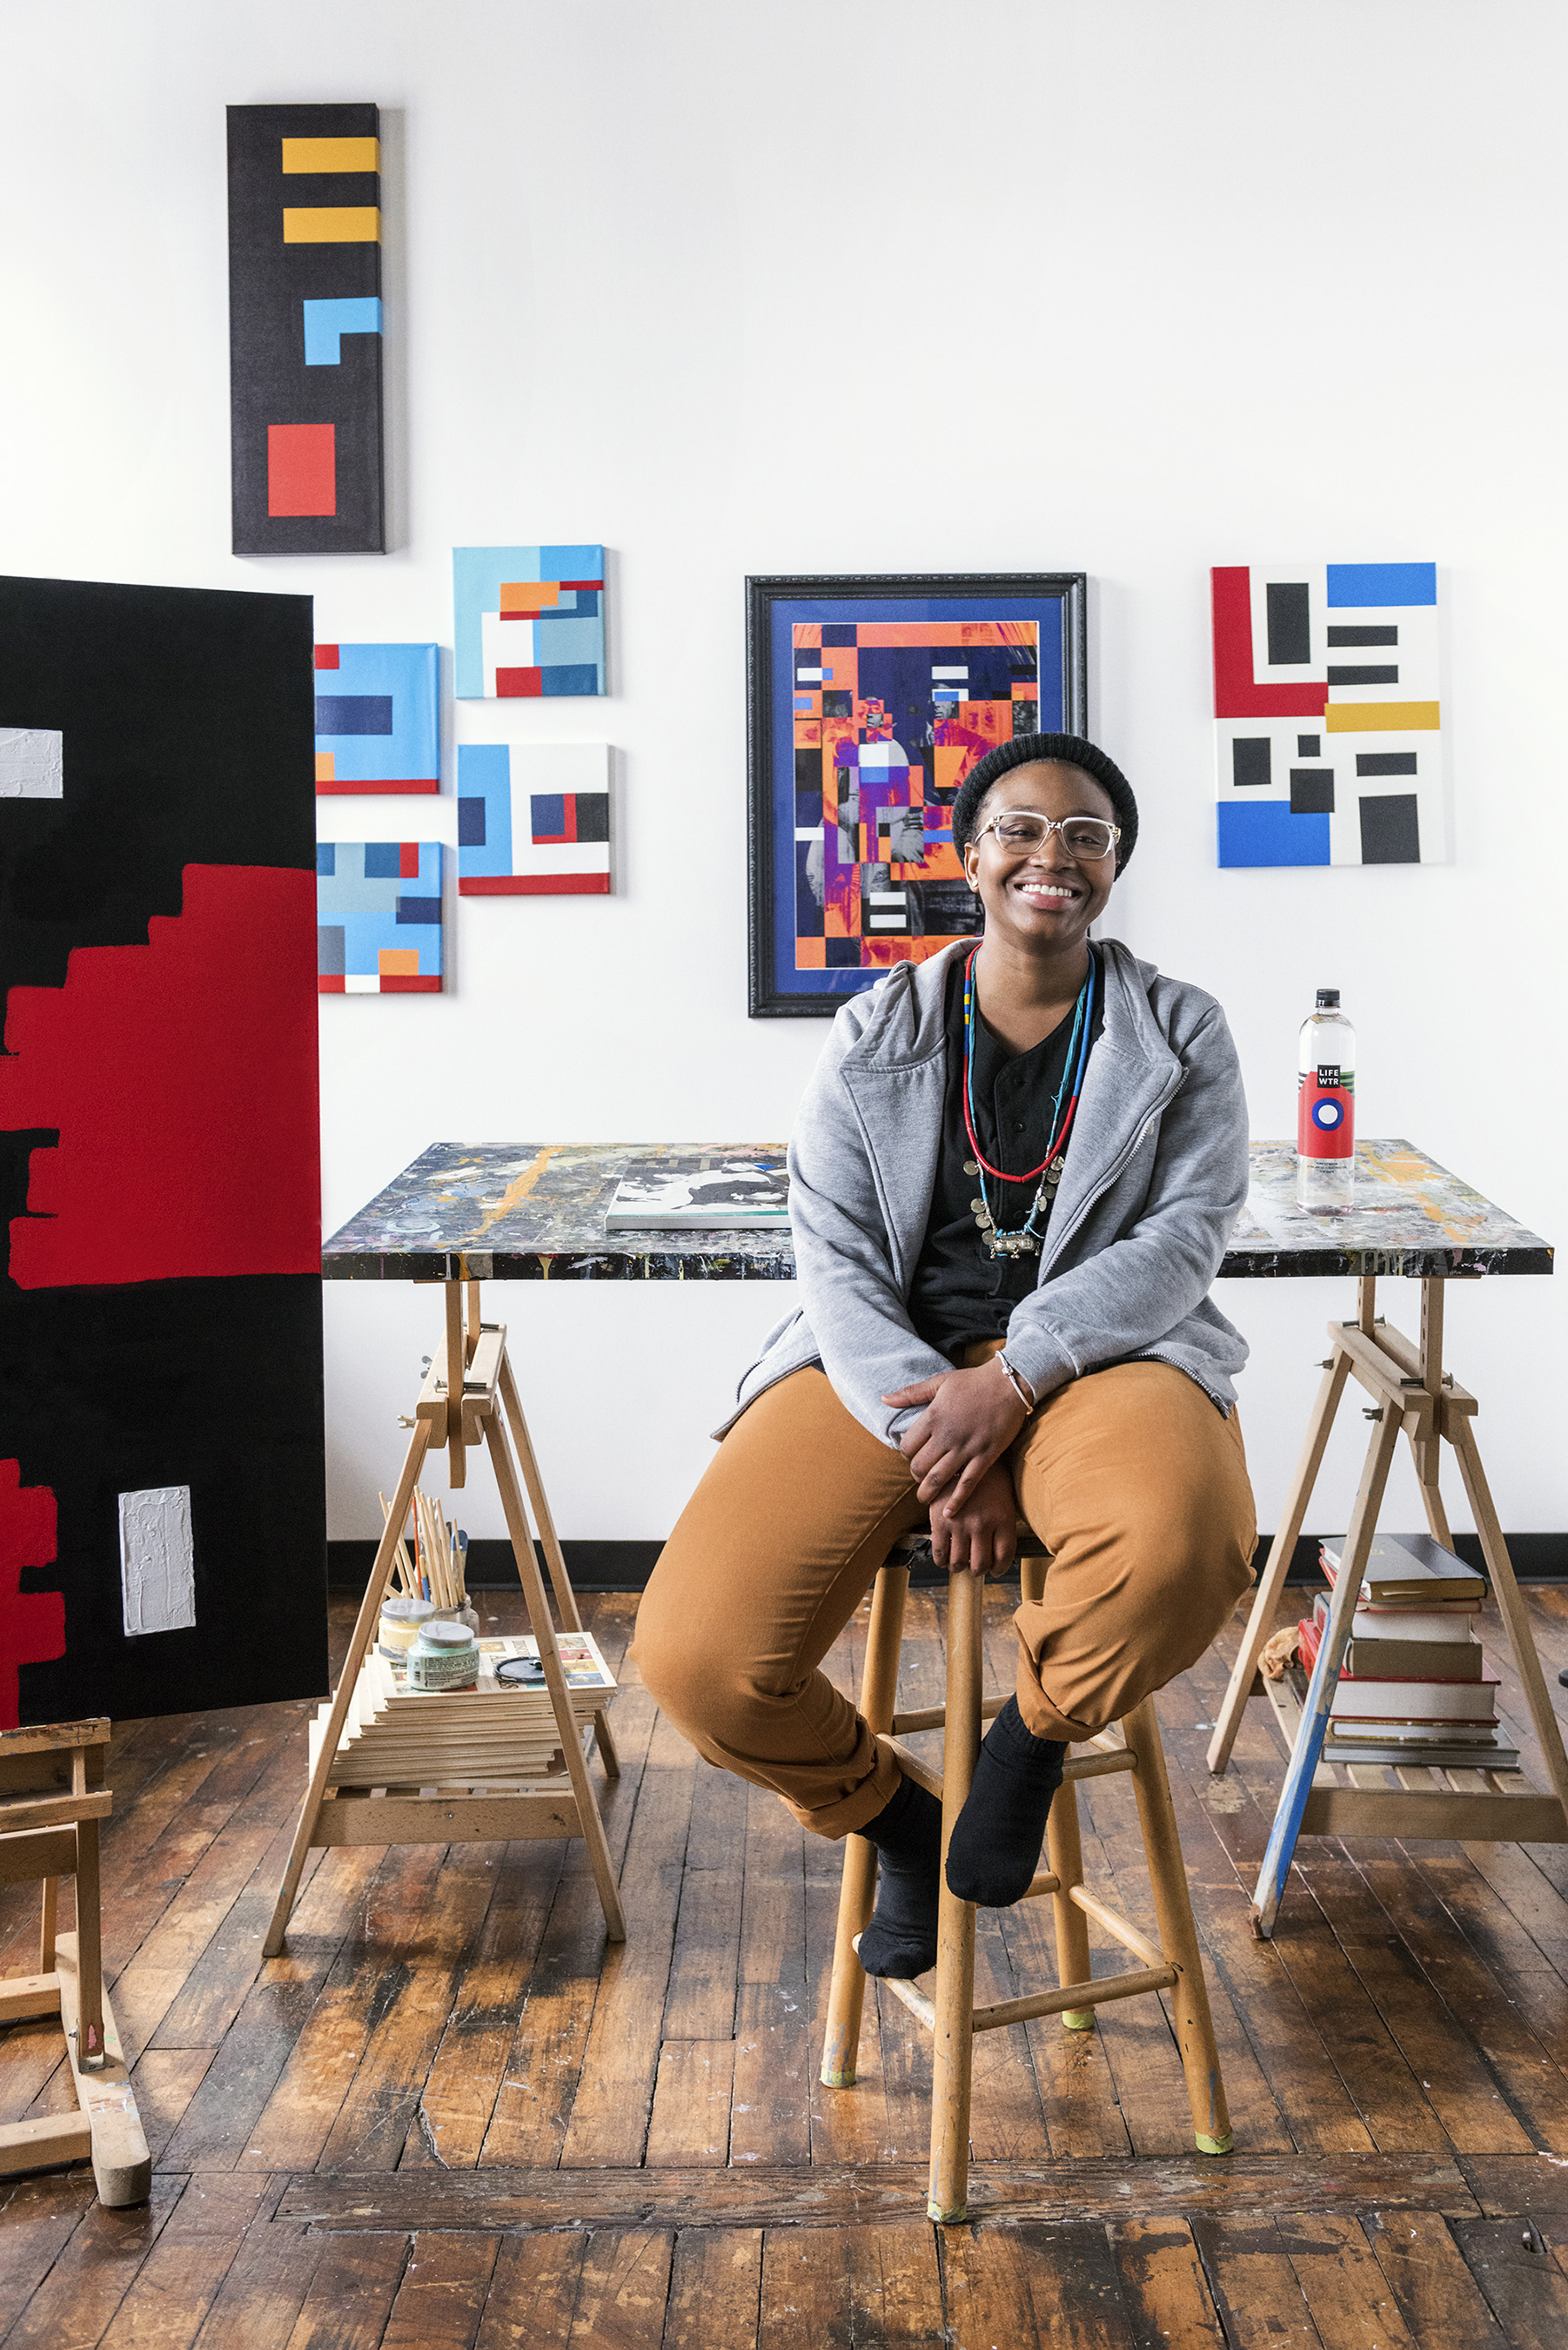 LIFEWTR Series 2 Artist Adrienne Gaither in her Washington, D.C. studio